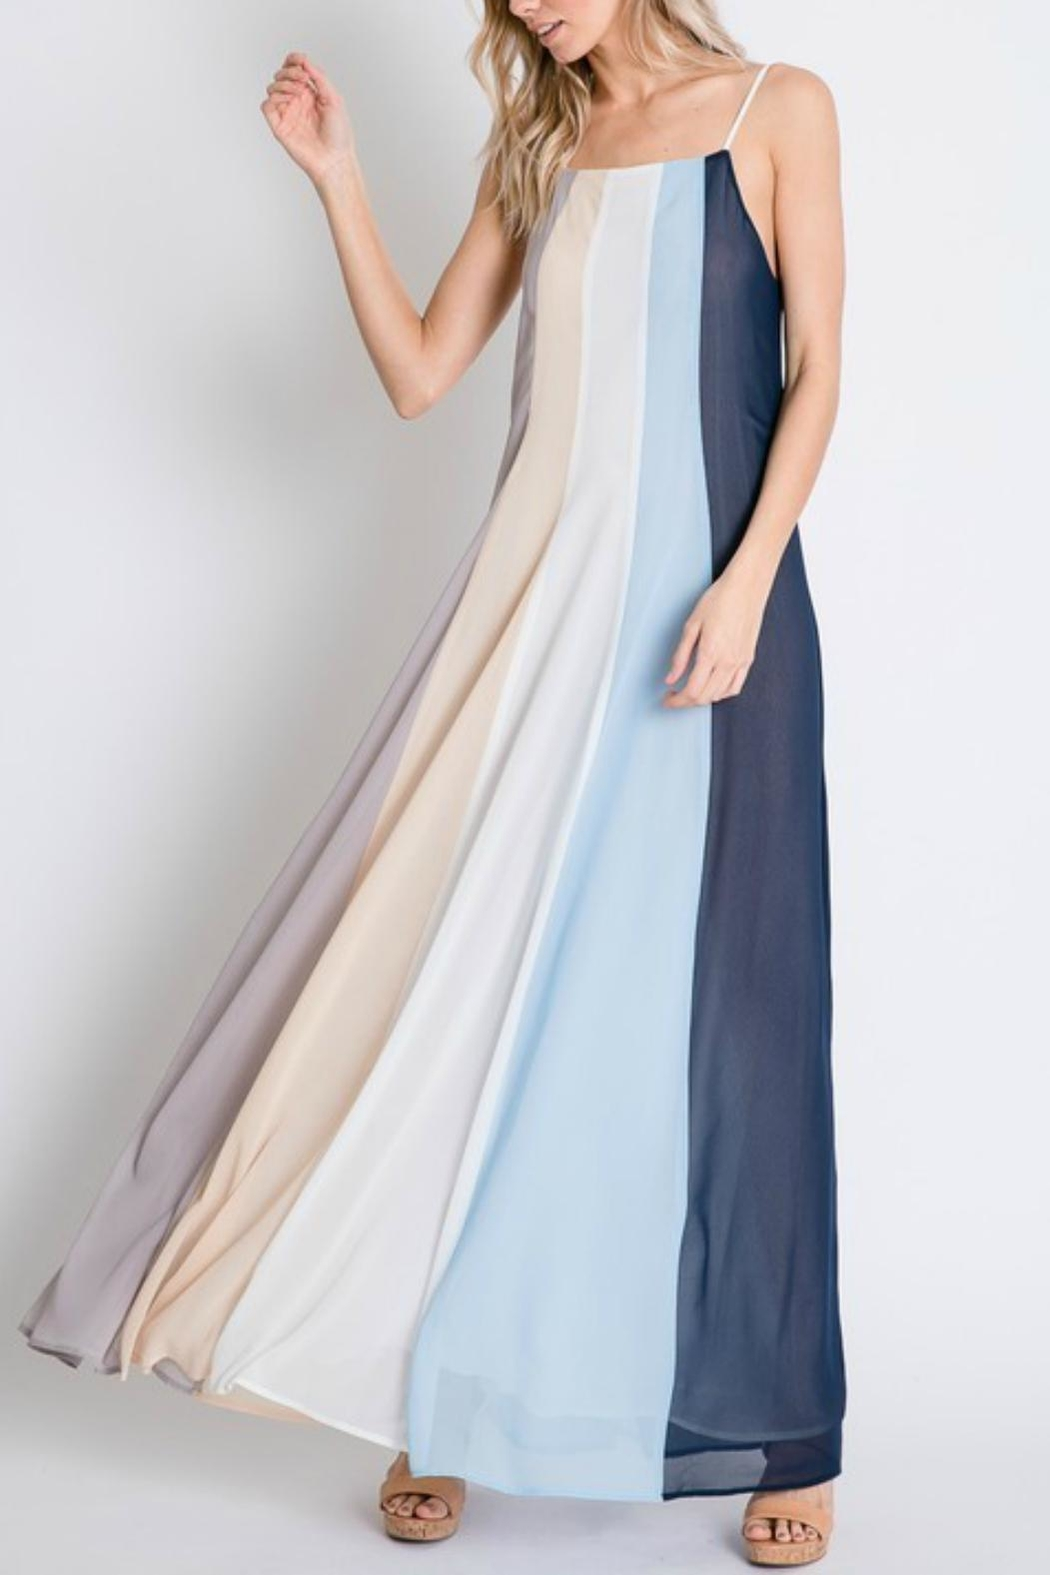 Pretty Little Things Colorblock Maxi Dress - Main Image